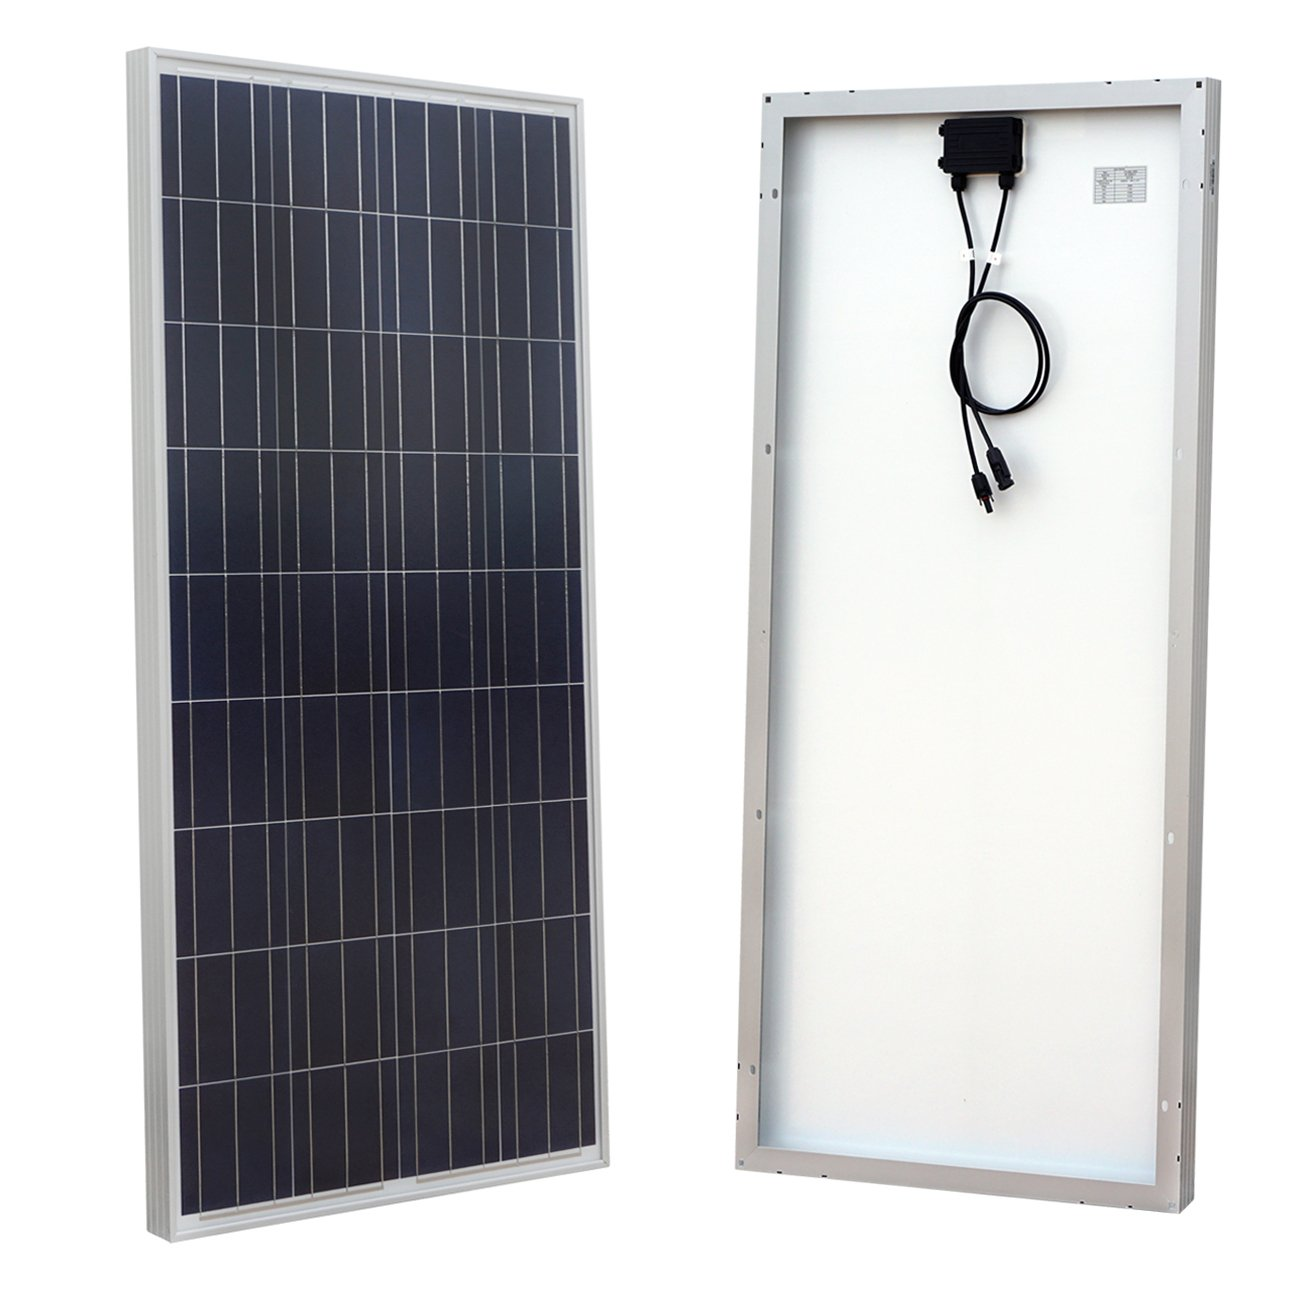 eco-worthy 160 Watt Polykristallin Photovoltaik PV Solar Panel Modul 12 V Akku laden